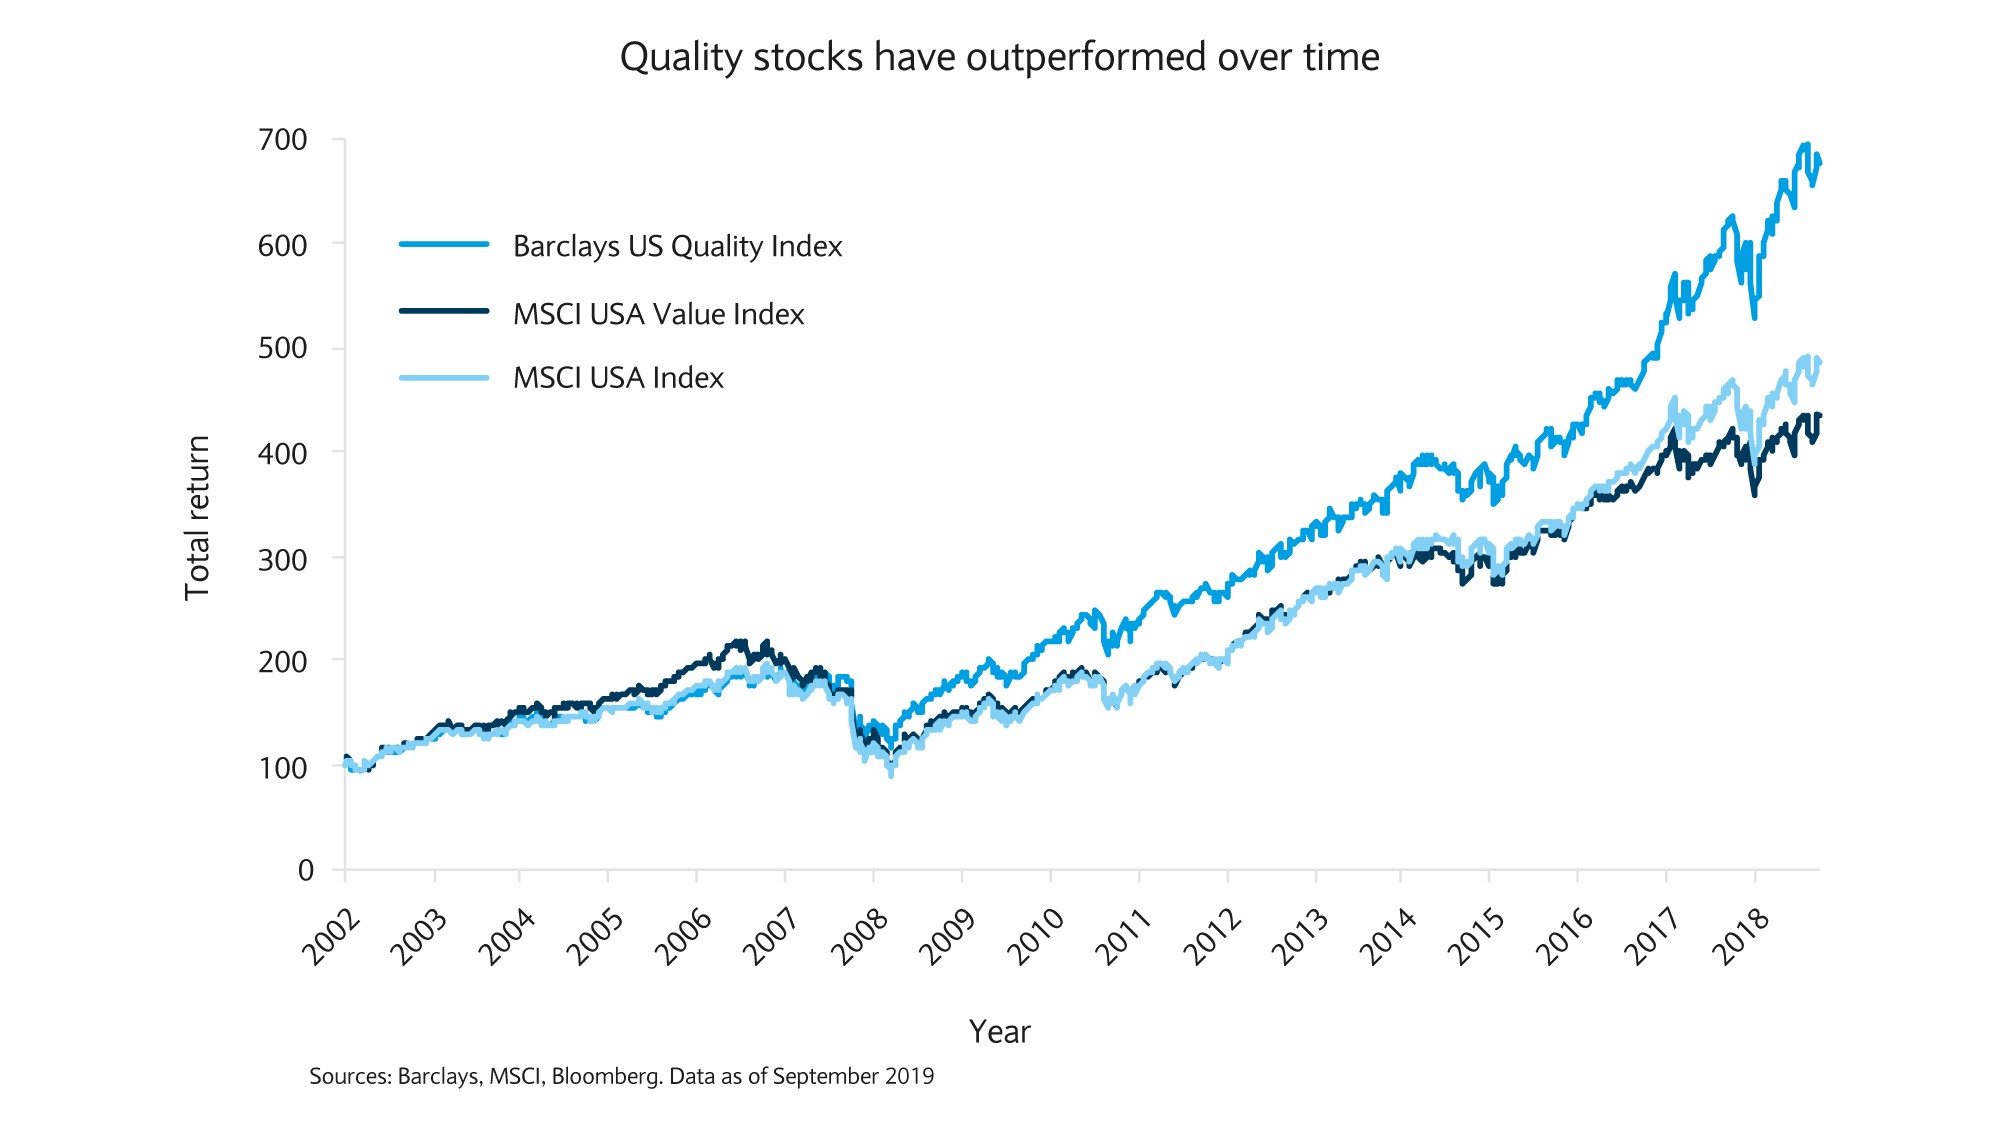 Quality stocks increasingly outperform